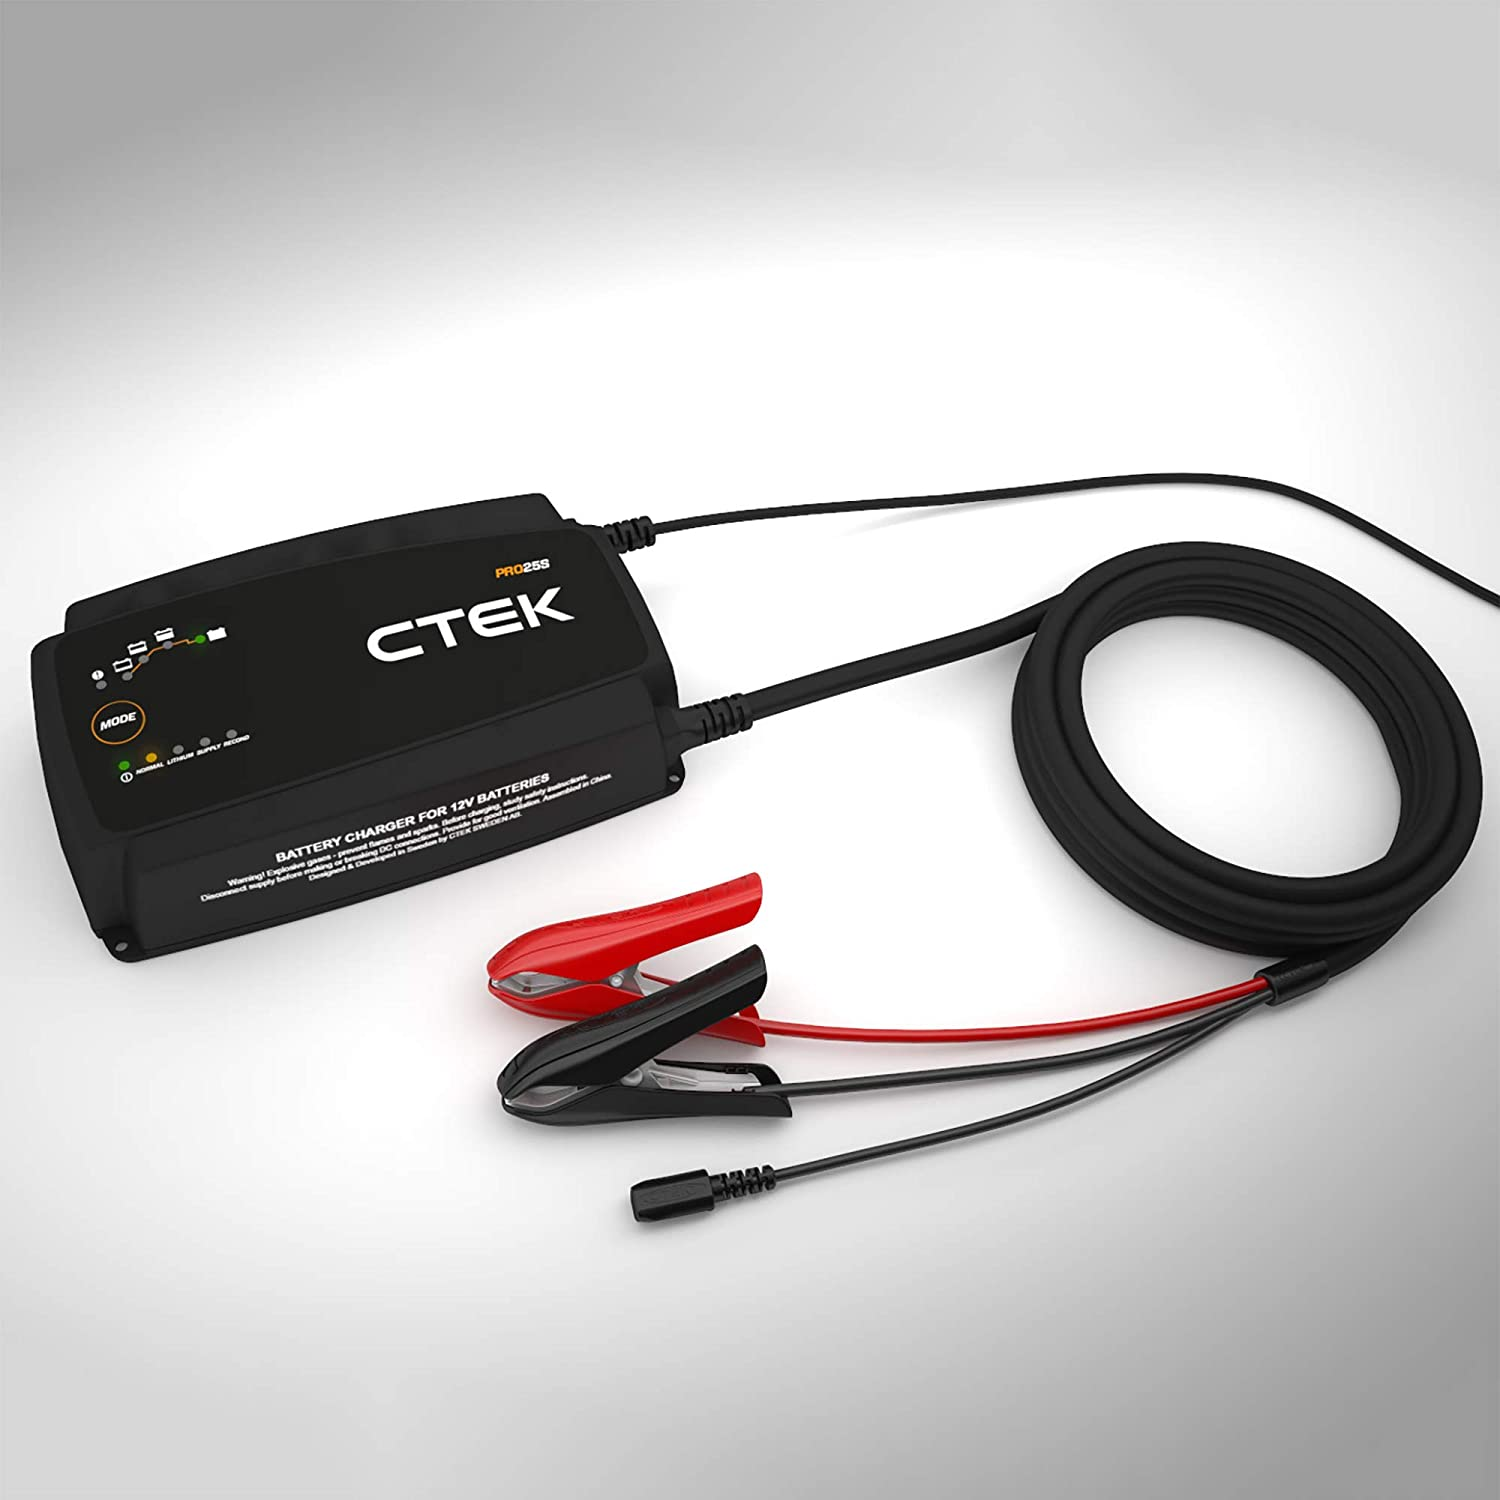 CTEK 40-185 Vehicle Battery Charger